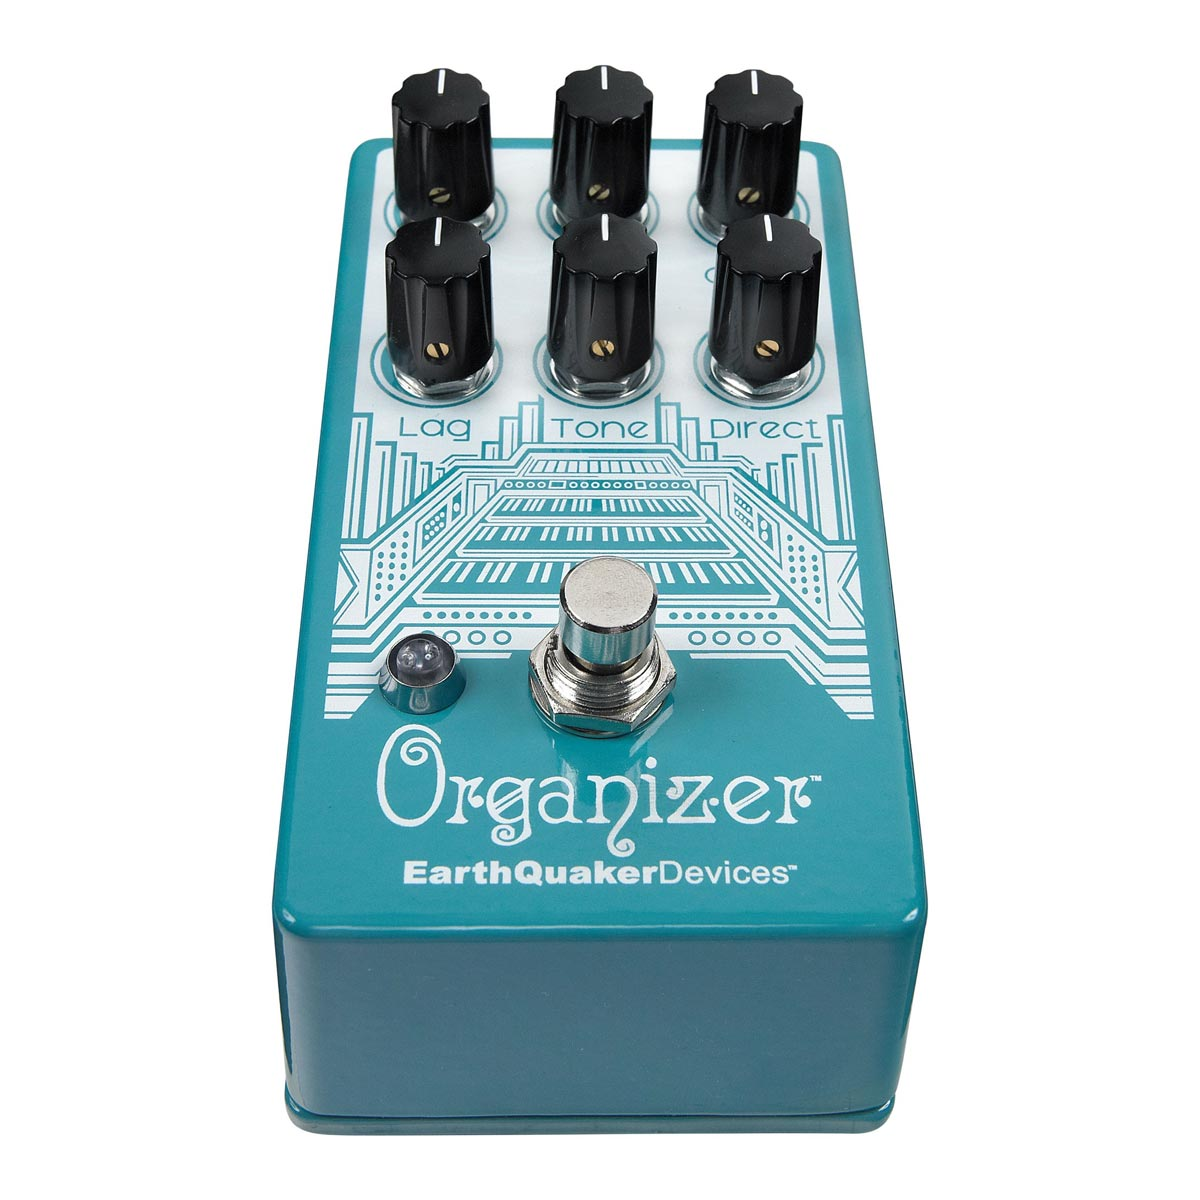 EarthQuaker Devices Organizer V2 - Pedal simulación organo